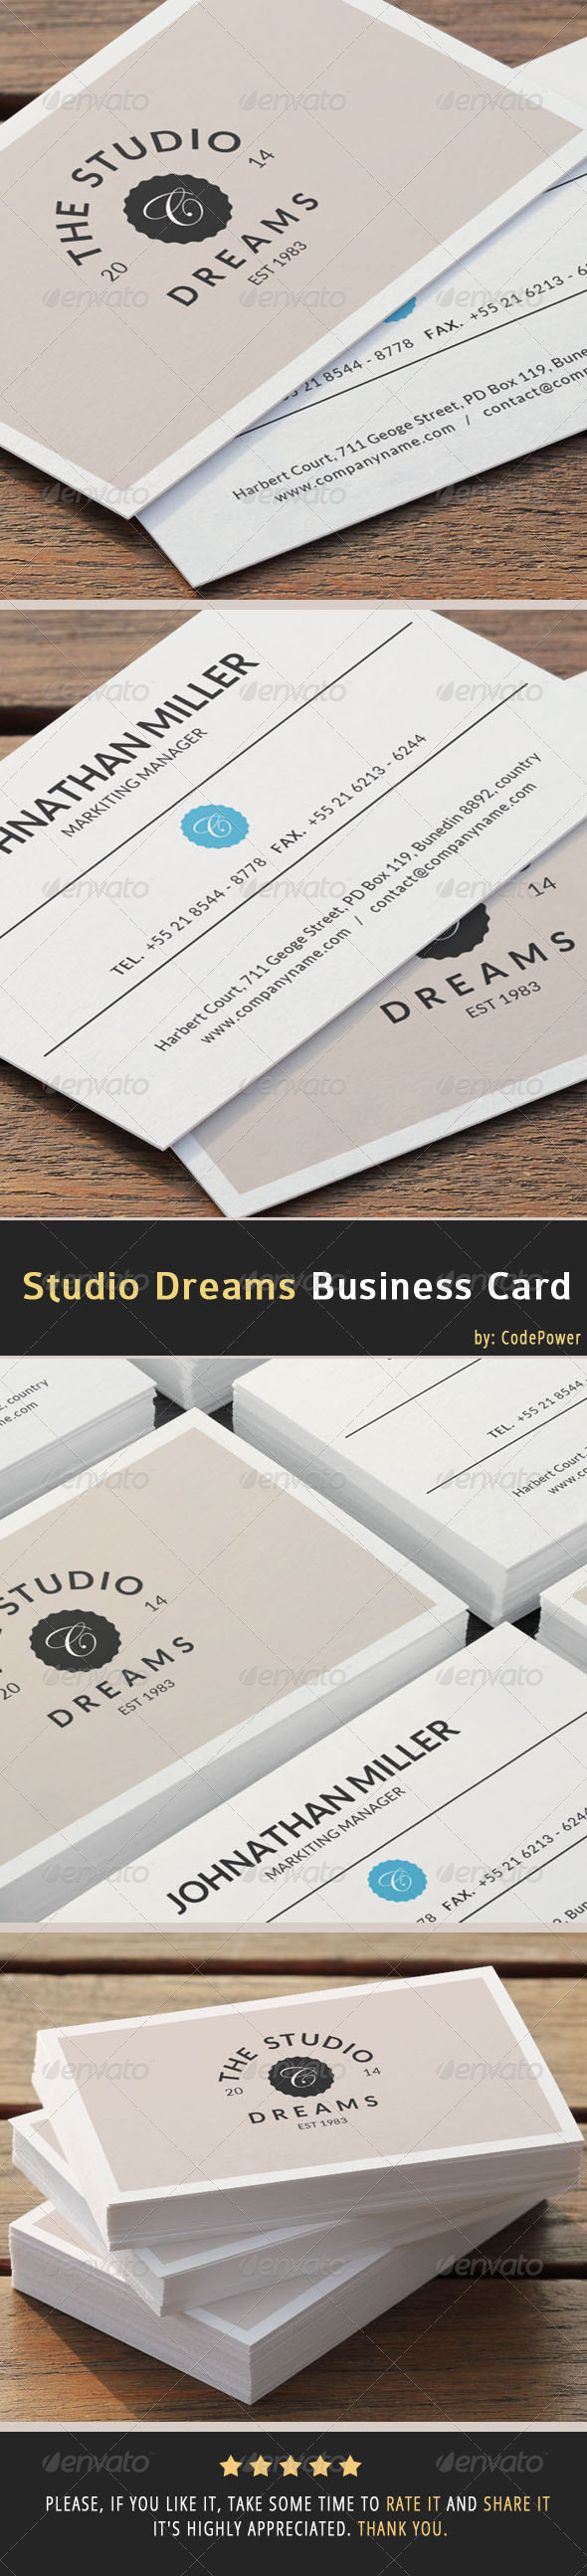 GraphicRiver Studio Dreams Business Card 6948057